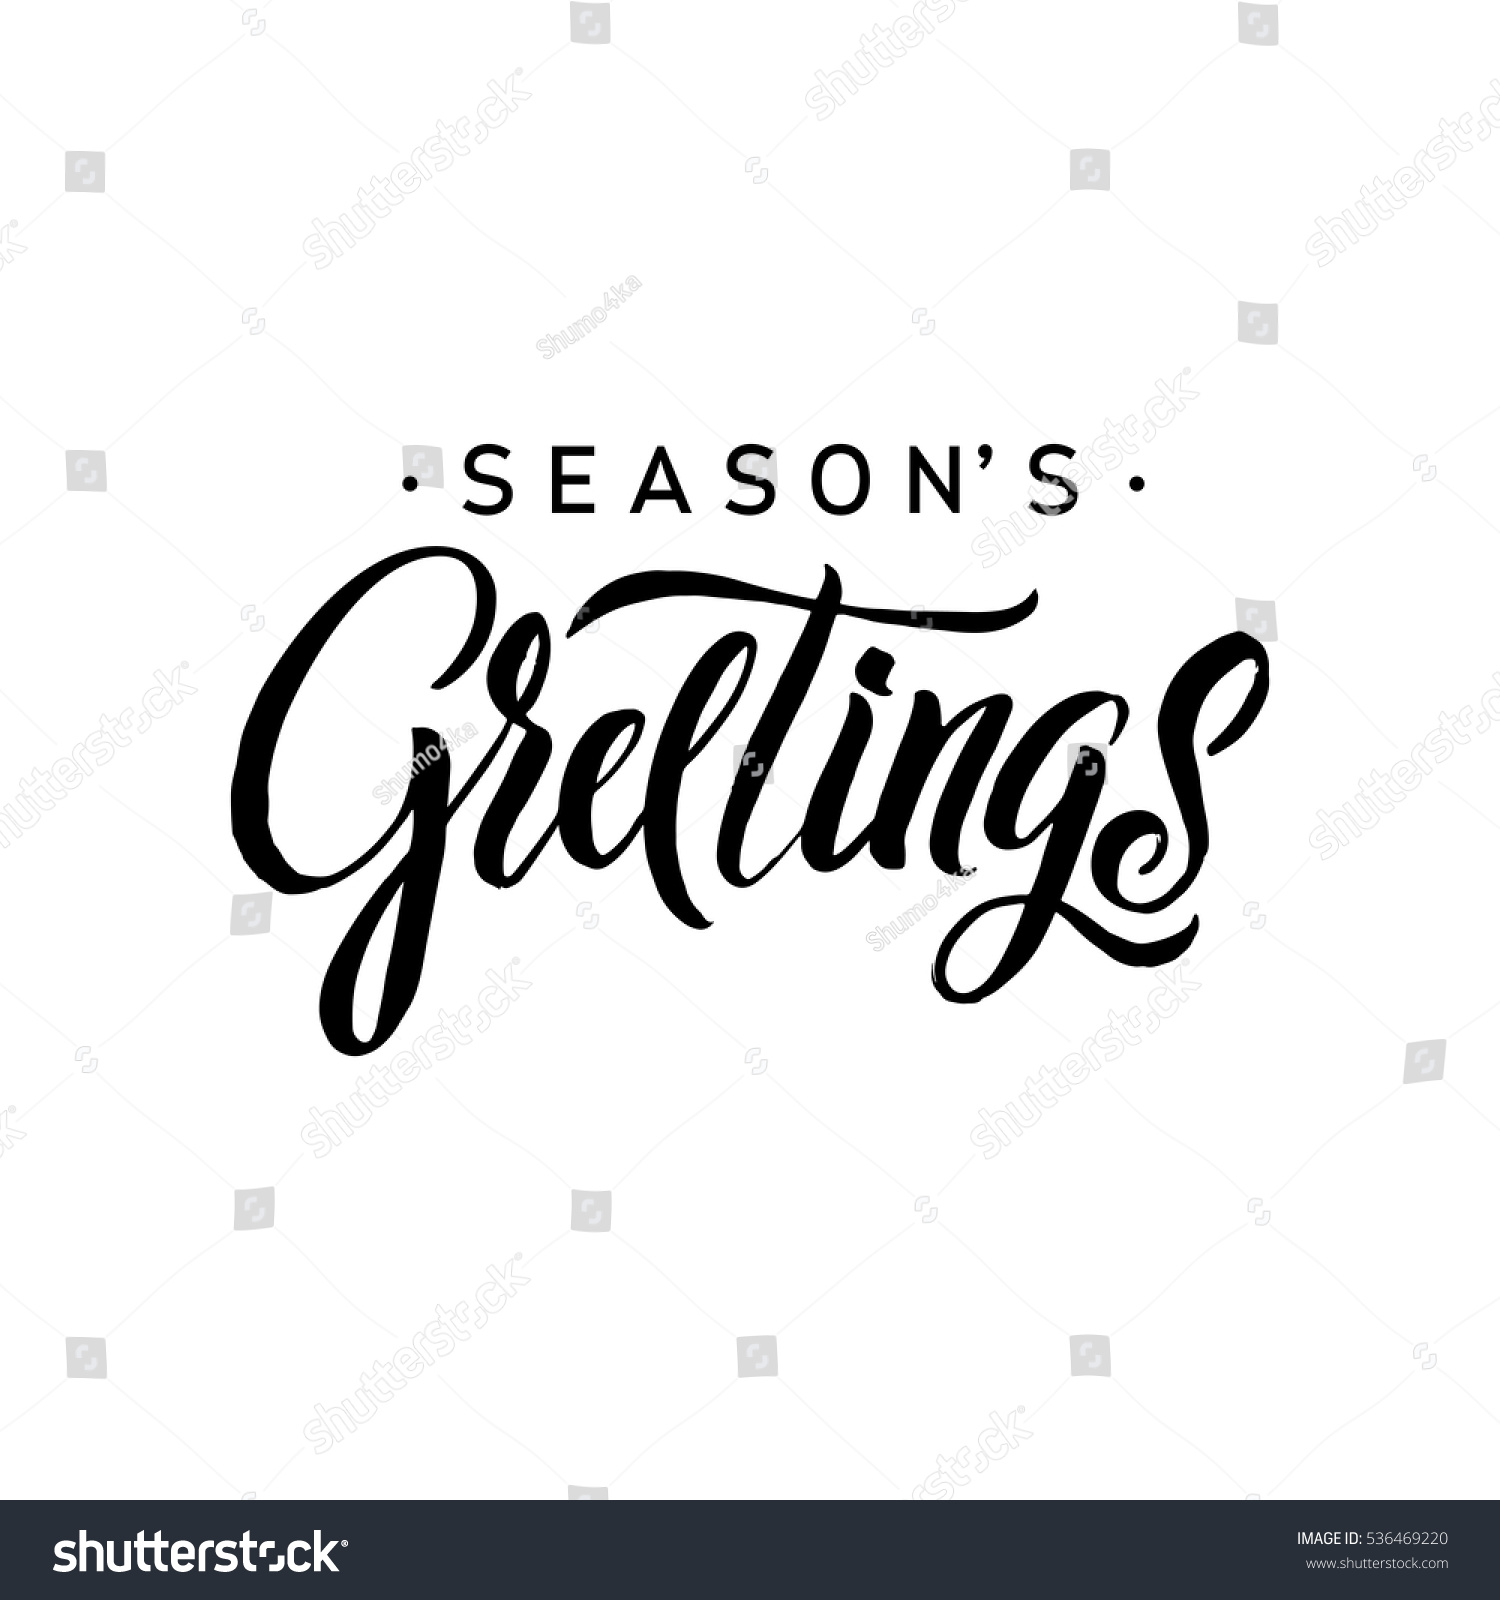 Stock images royalty free images vectors shutterstock seasons greetings calligraphy greeting card black typography on white background vector illustration hand drawn kristyandbryce Image collections